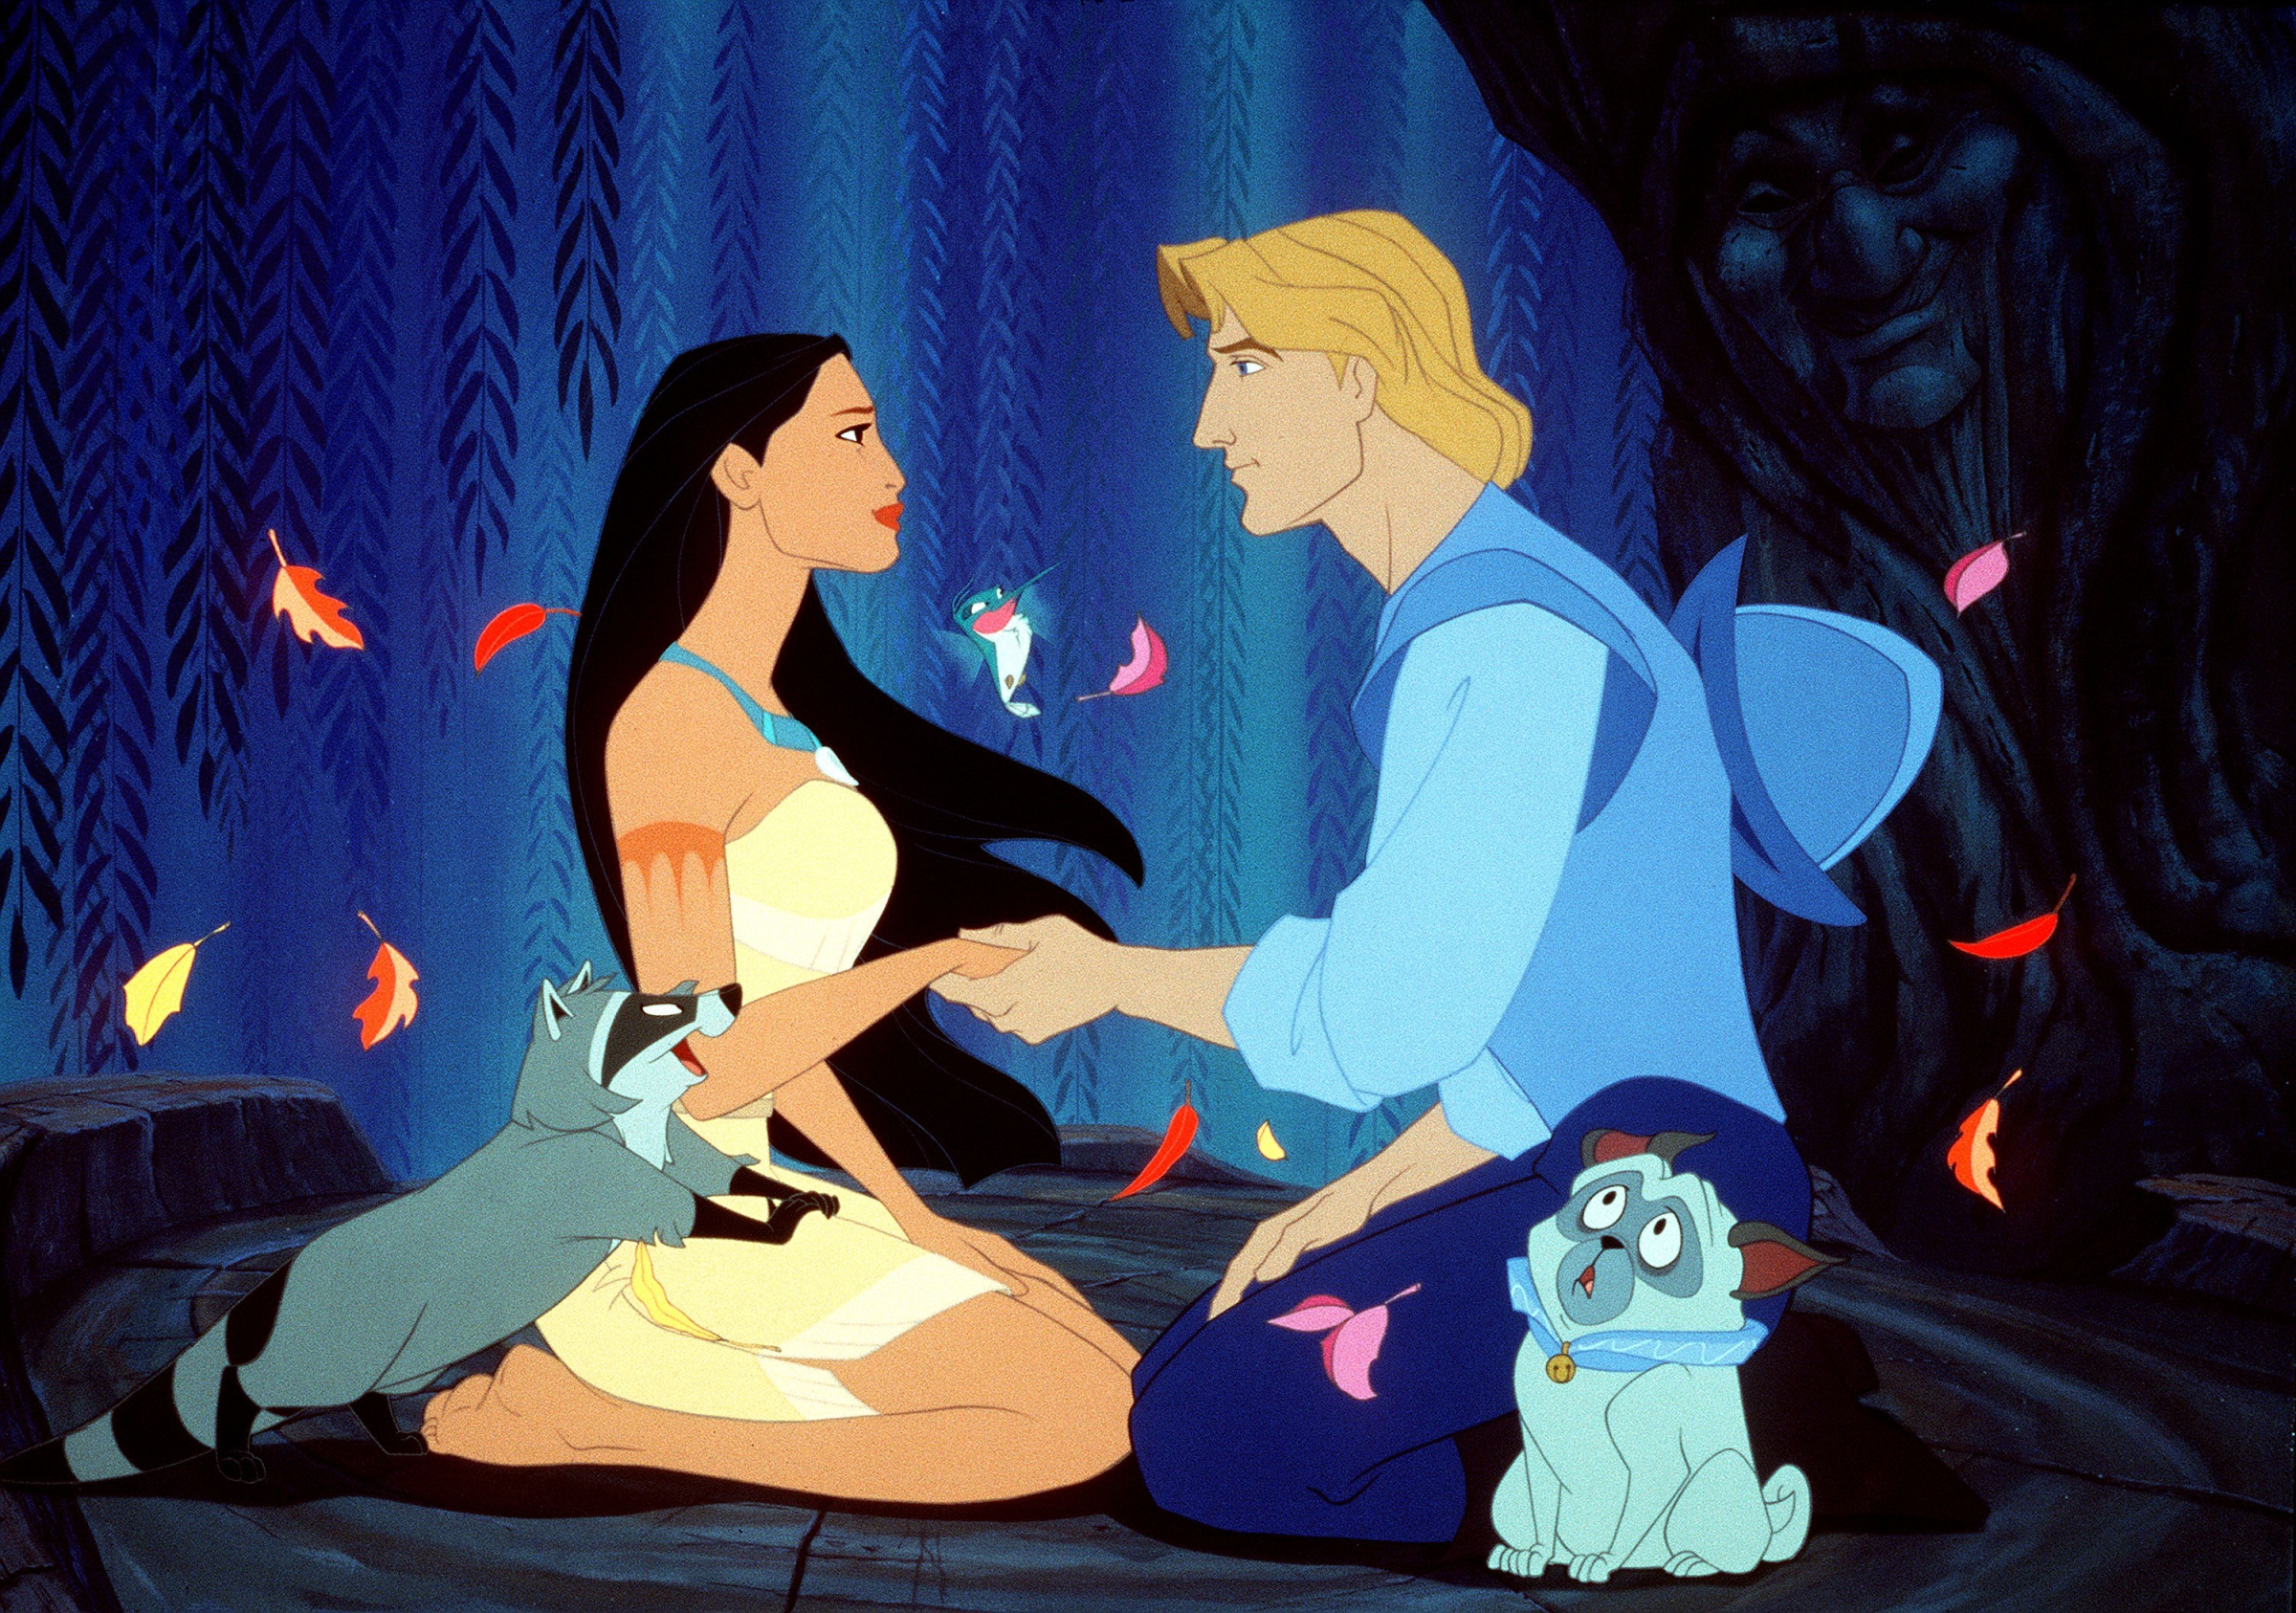 Pocahontas20and20John20Smith20in20Disneys20Pocahontas2028199529-33852c8